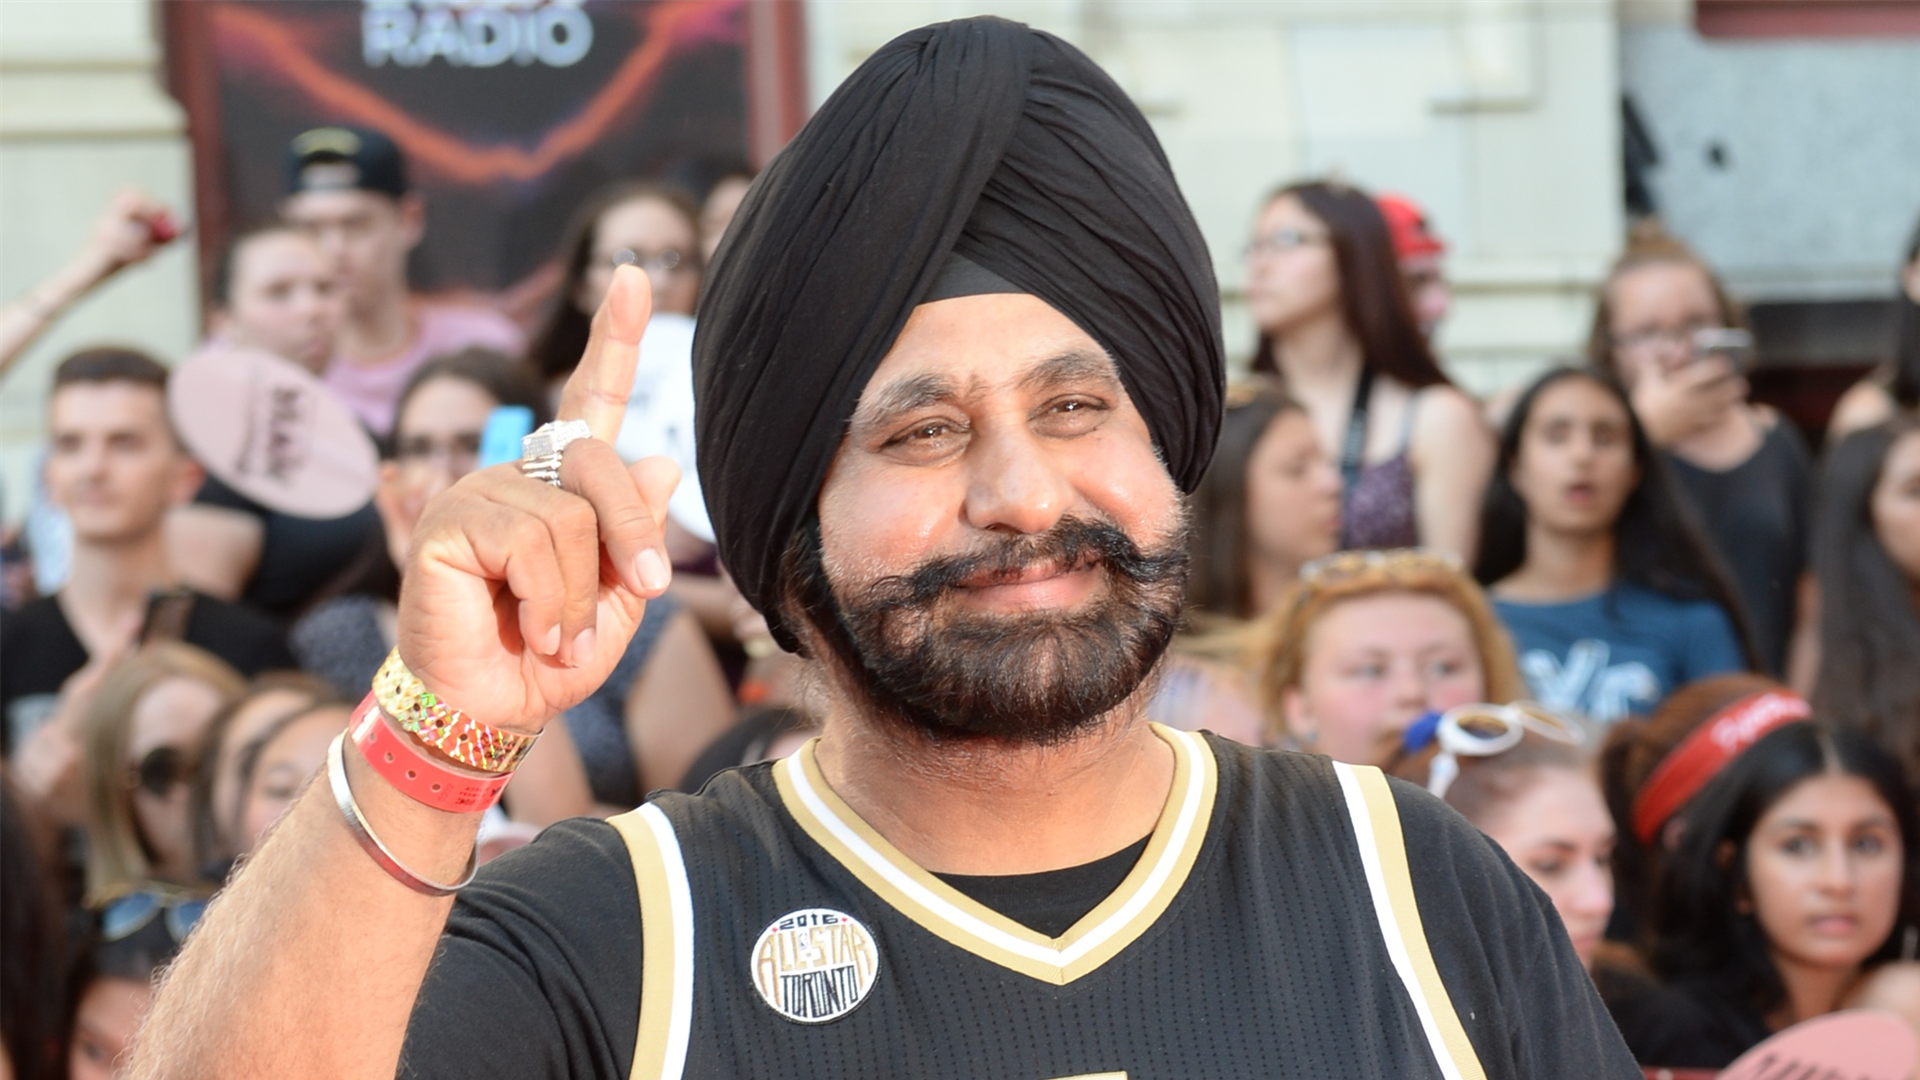 e37448439d Nav Bhatia: the path to becoming the NBA's biggest superfan   NBA.com India    The official site of the NBA. );